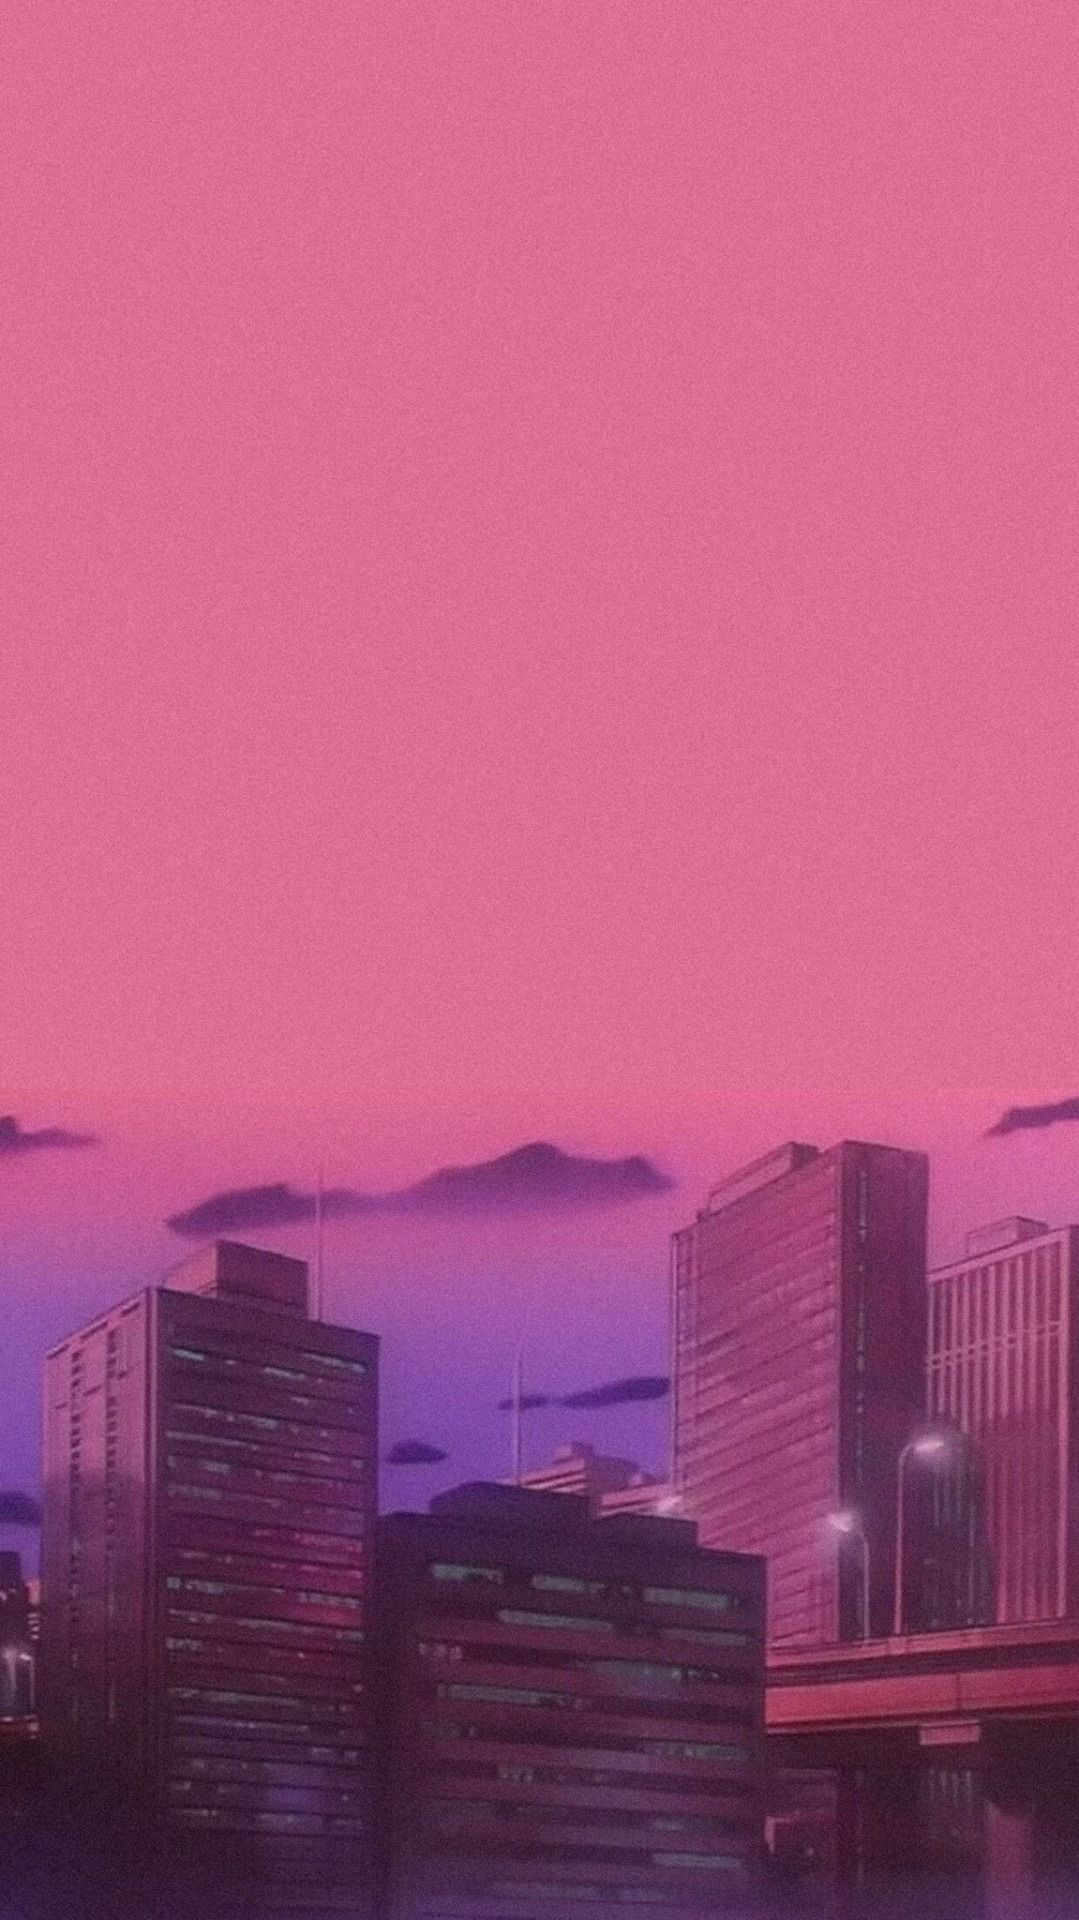 90s Anime Aesthetic Wallpaper In 2020 Pink Retro Wallpaper Aesthetic Wallpapers Retro Wallpaper